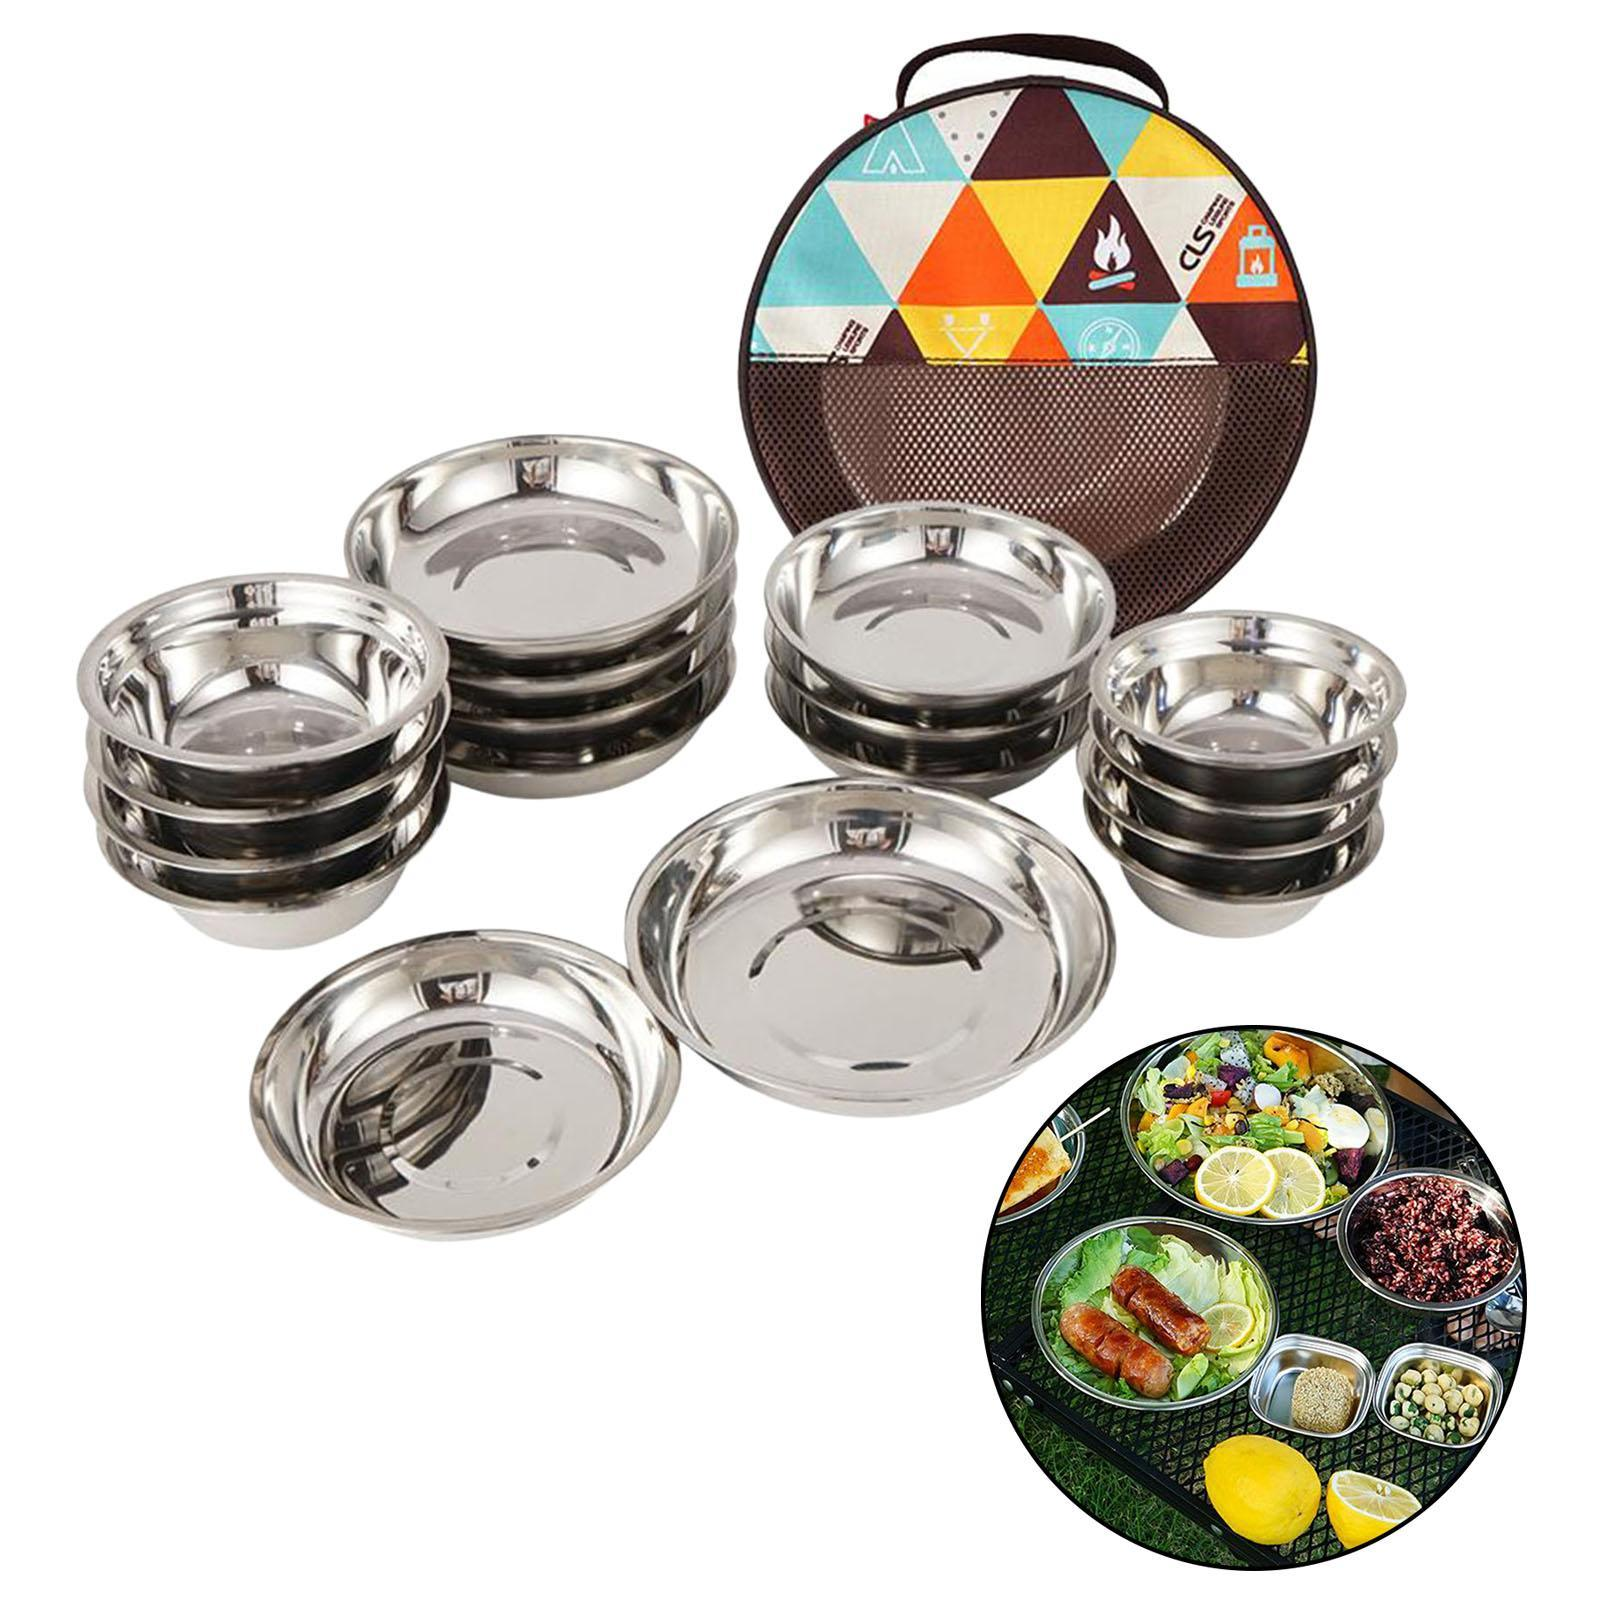 17x Stainless Steel Cooking Dish Plate Bowl Set Camping Outdoor Hiking Travel